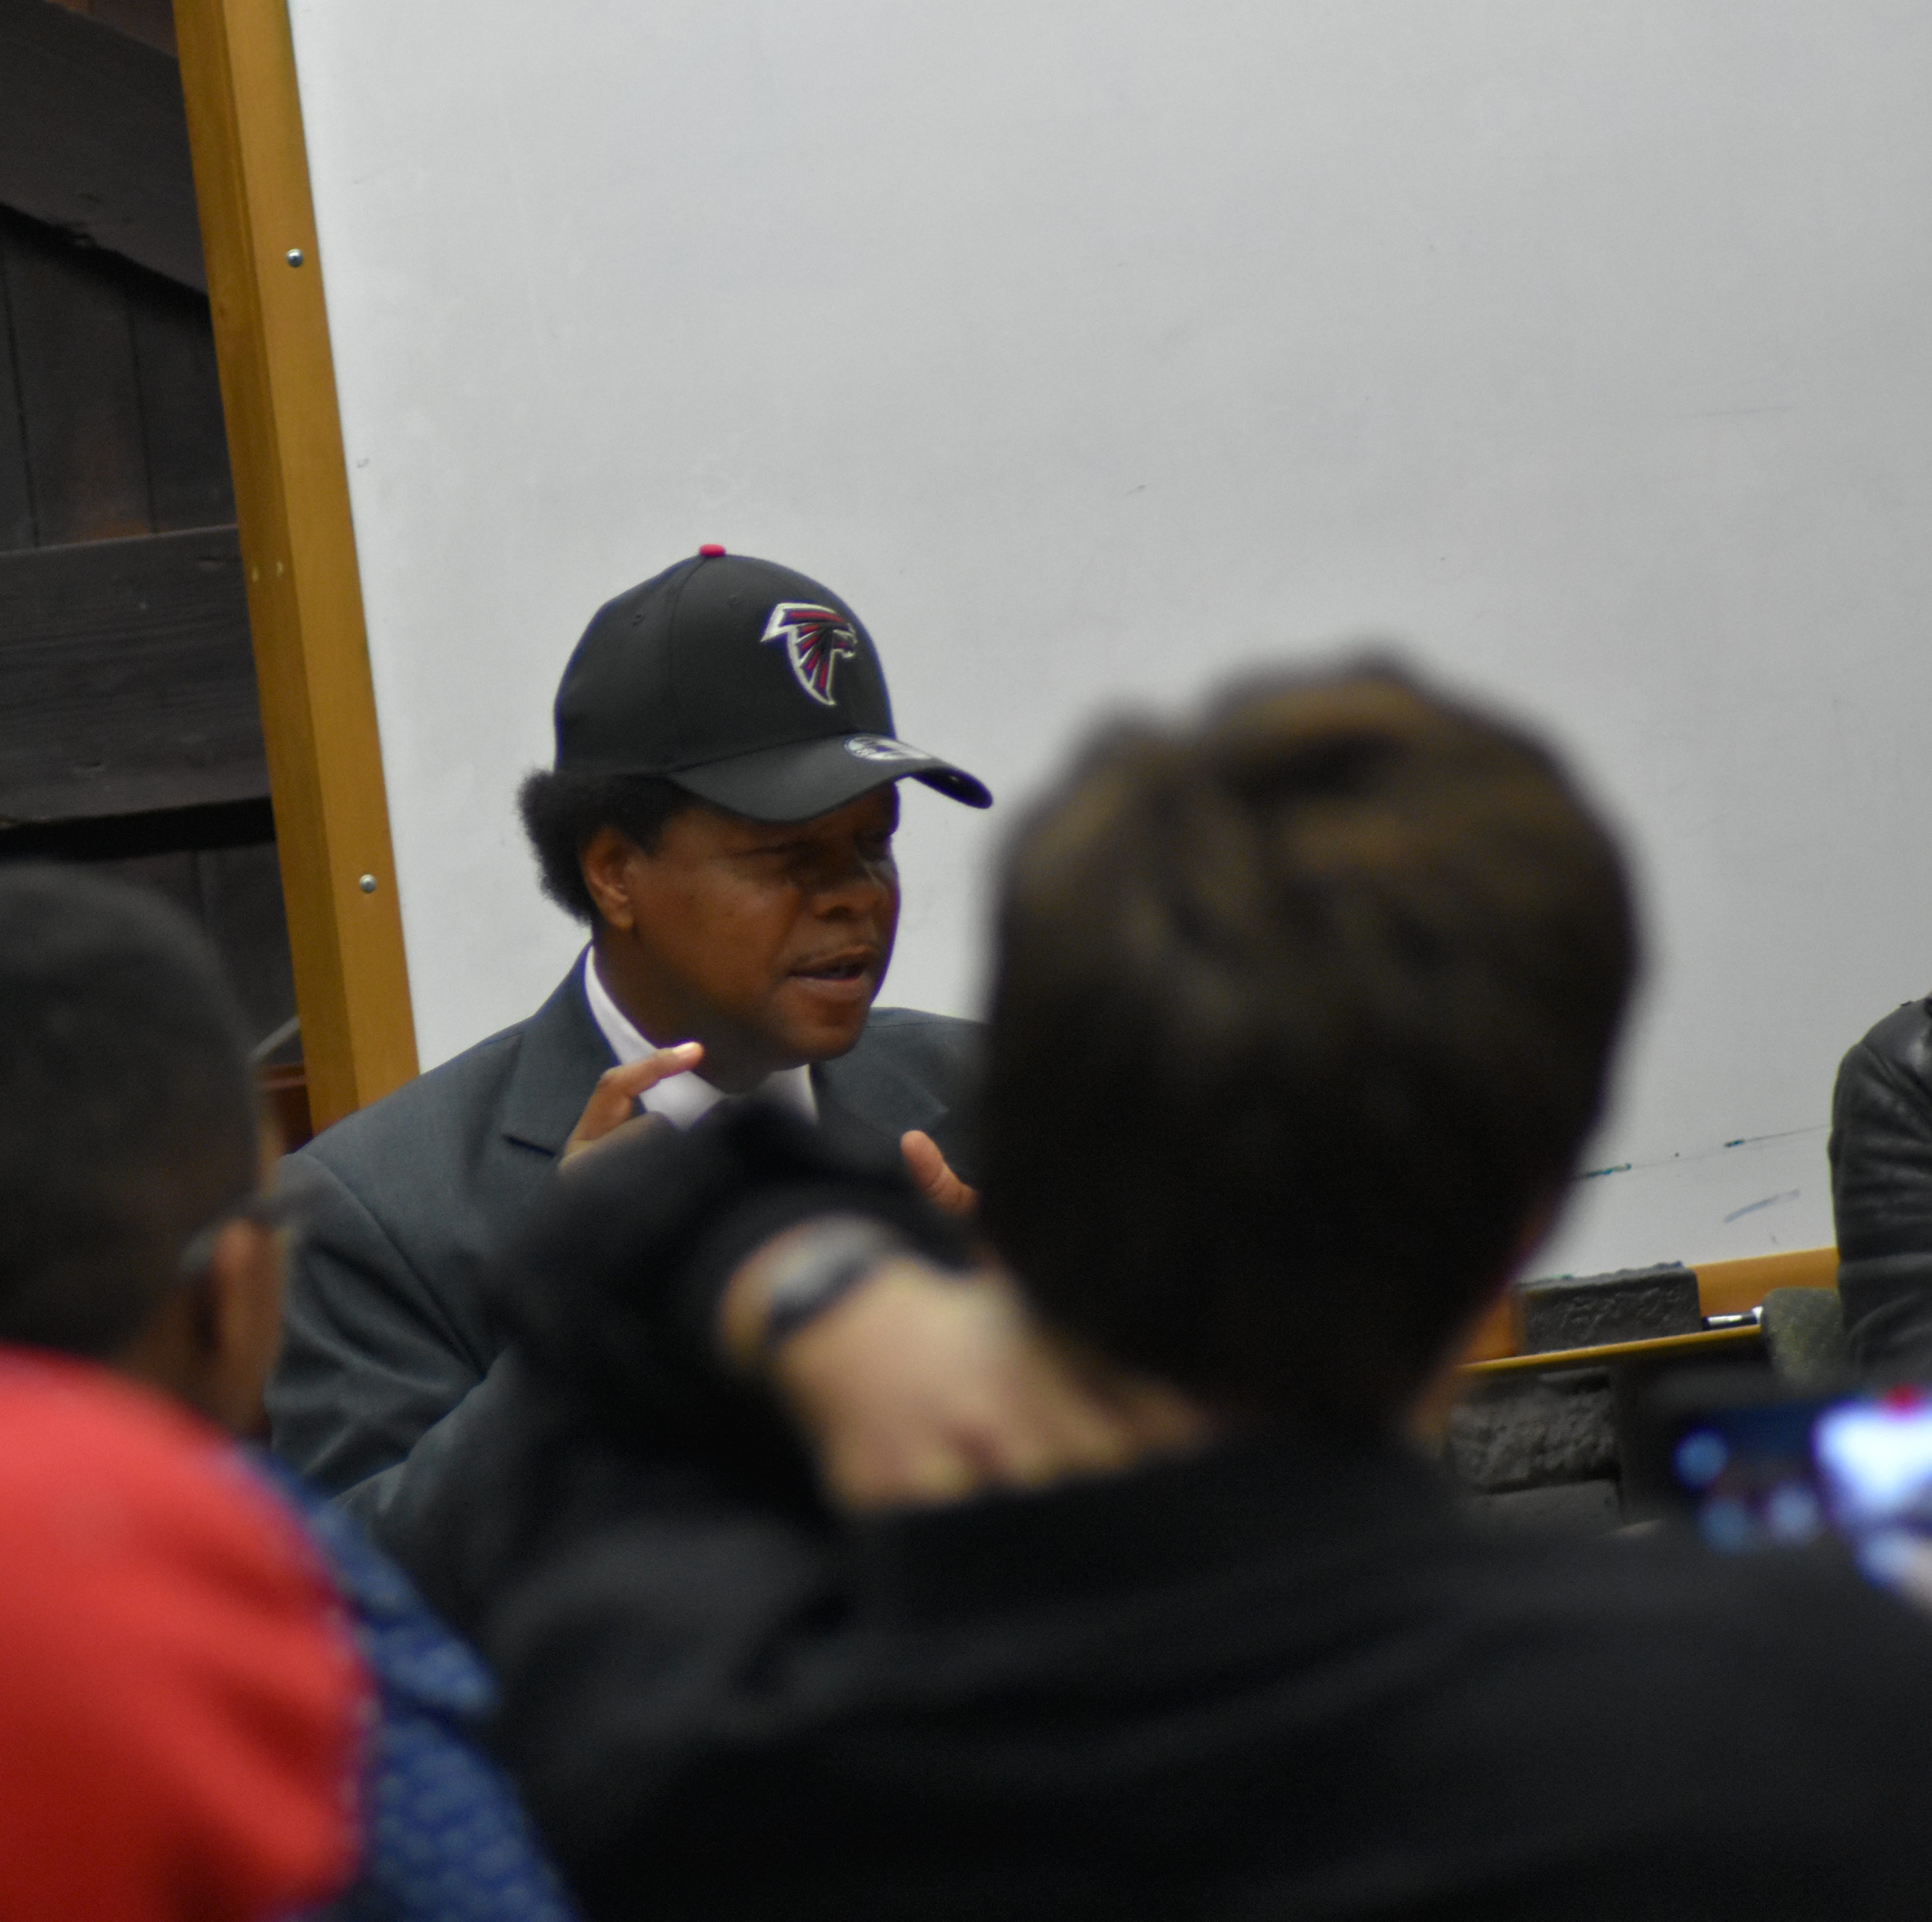 Activists organize for community oversight of police